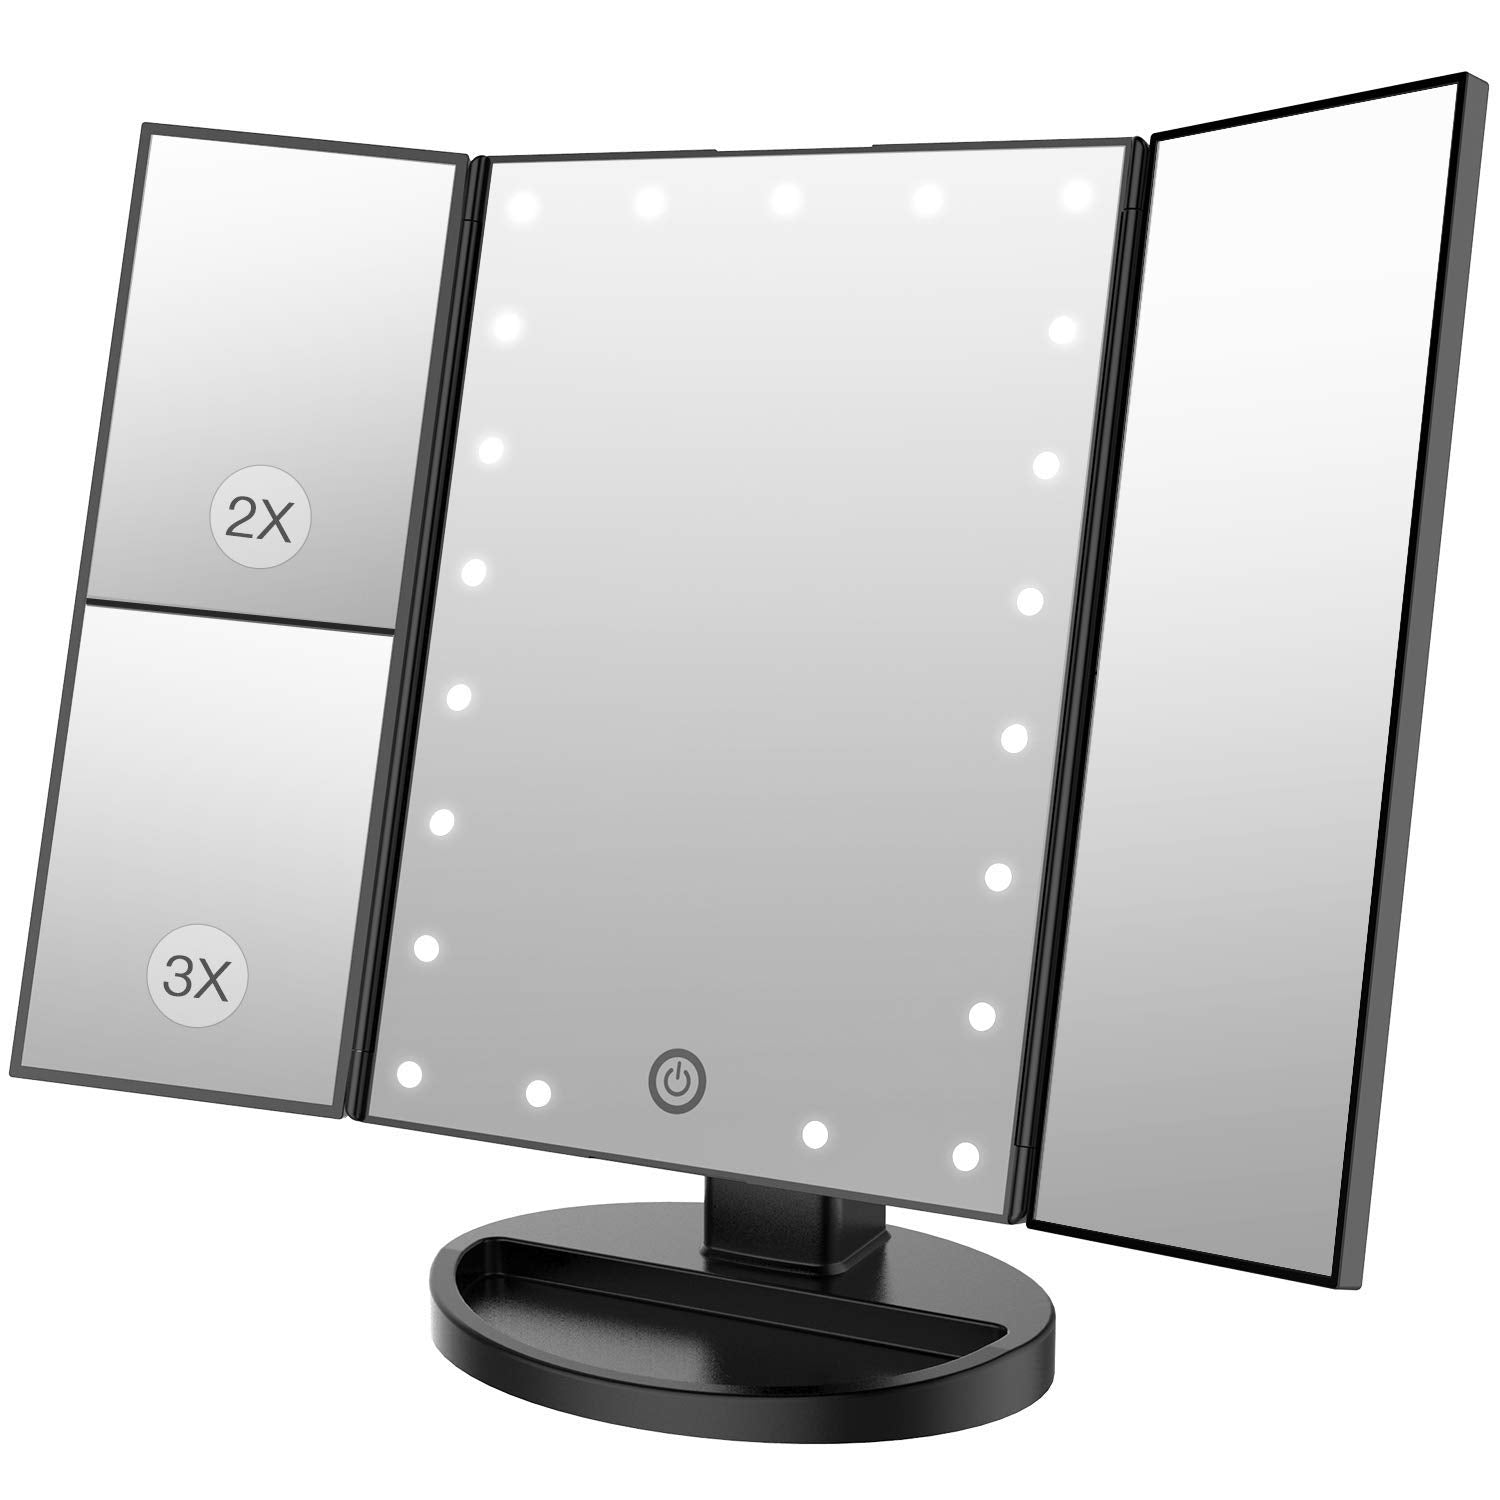 BESTOPE Makeup Vanity Mirror with 24LED Lights 3X/2X Magnifying Led Makeup